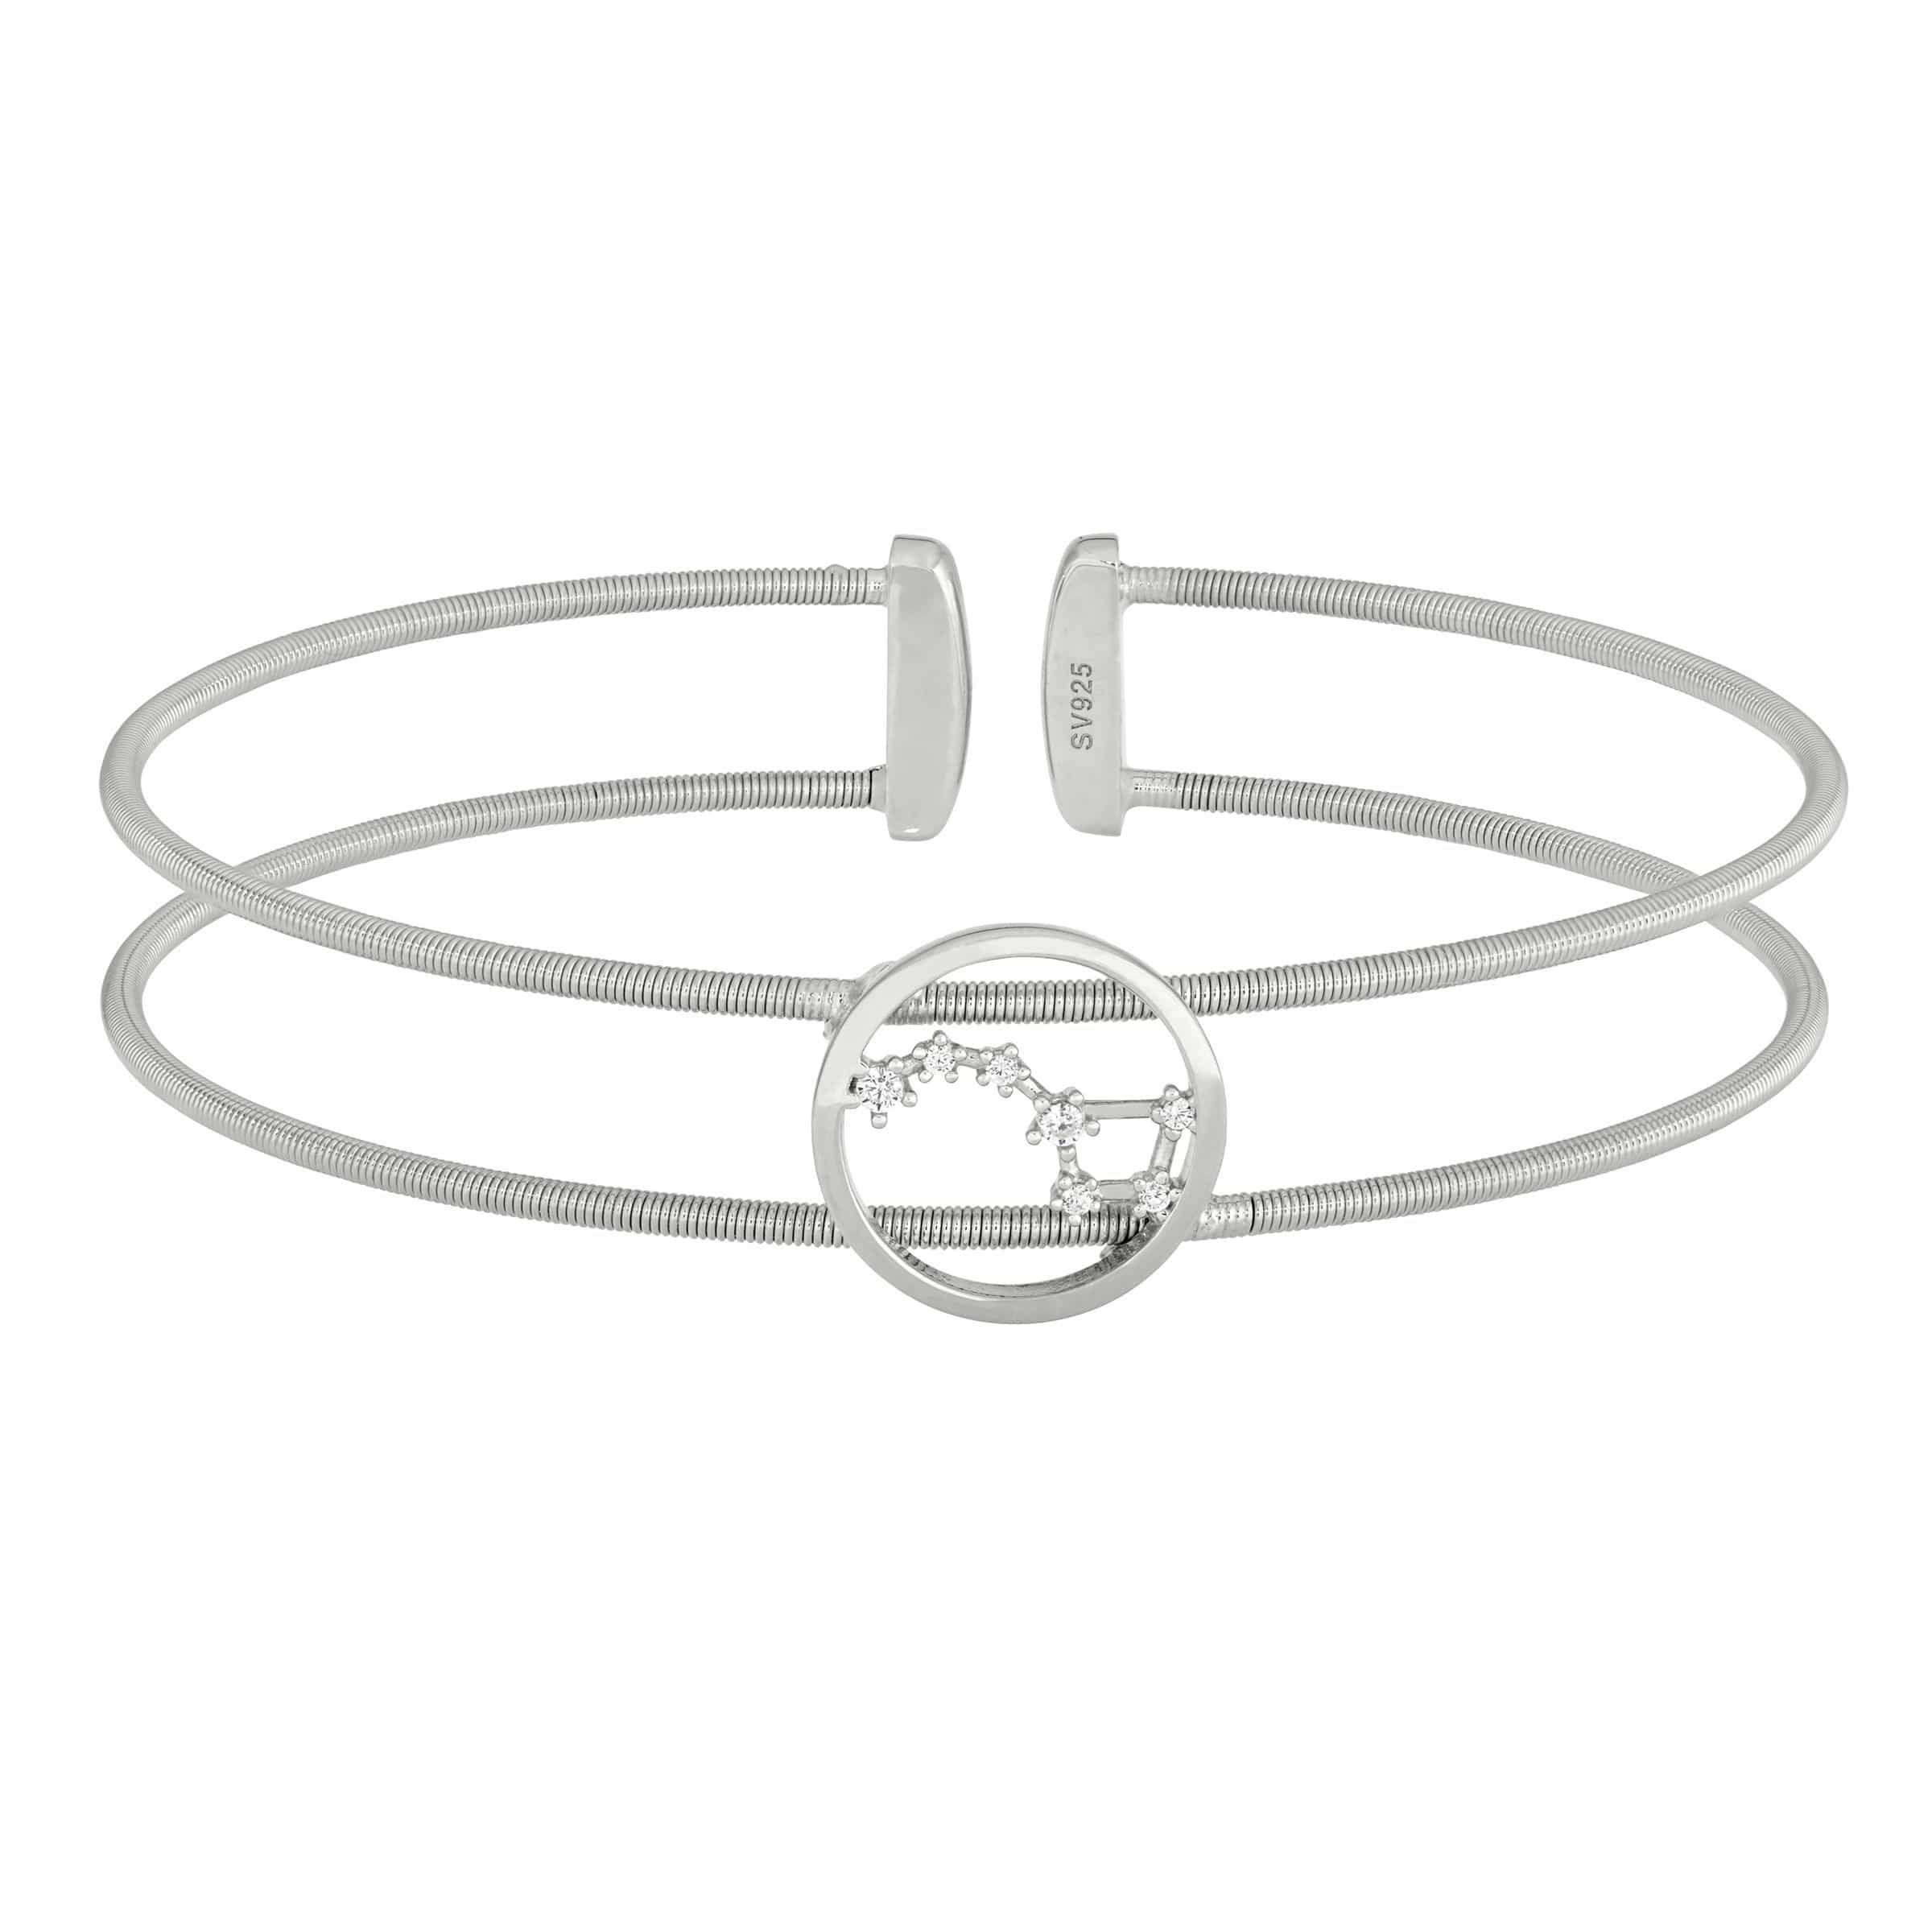 Rhodium Finish Sterling Silver Cable Cuff Constellation Big Dipper Bracelet - LL7049B-RH-Kelly Waters-Renee Taylor Gallery